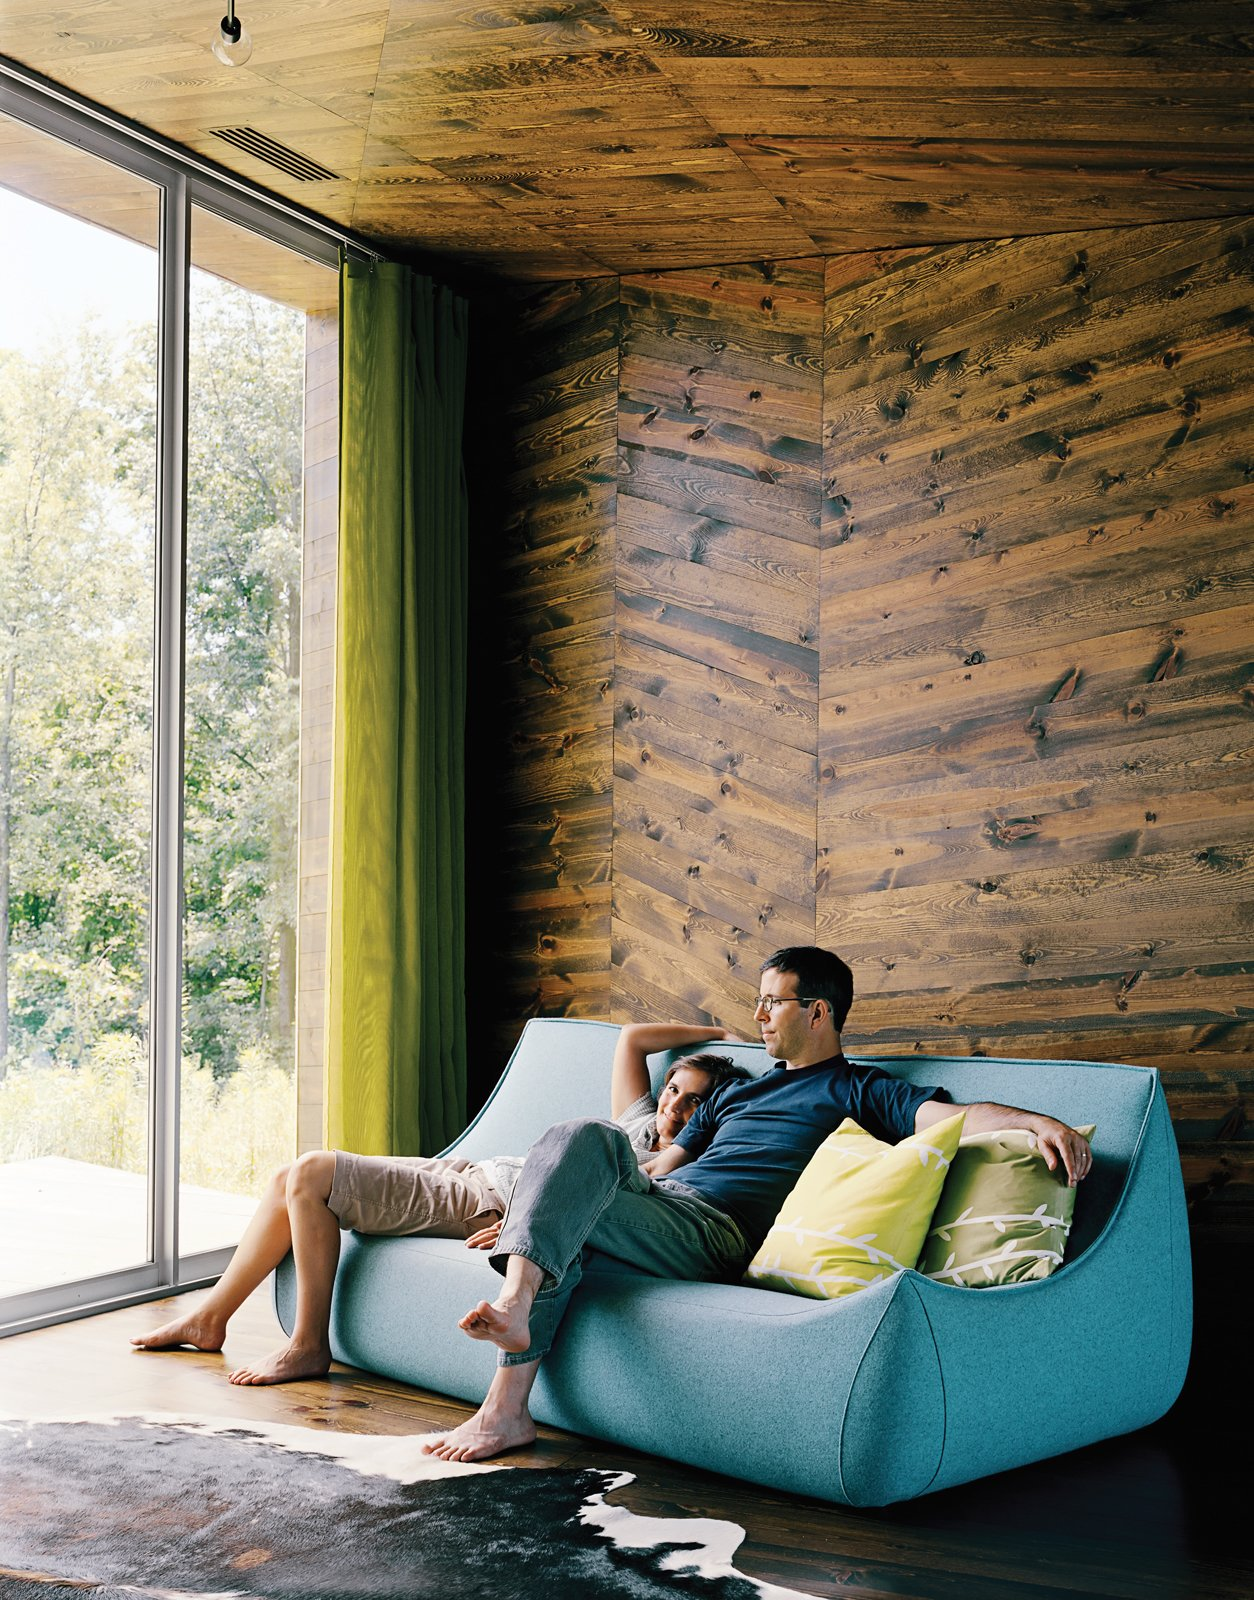 In the warm interior of the X House in Hennepin, Illinois, Diane Pascal and Thomas Richie enjoy the view from their boiled-wool Ligne Roset couch in the main living area, where wood paneling on the ceiling and walls mirrors the topography of the landscape. A gauzy green curtain adds a moment of color to the scheme.